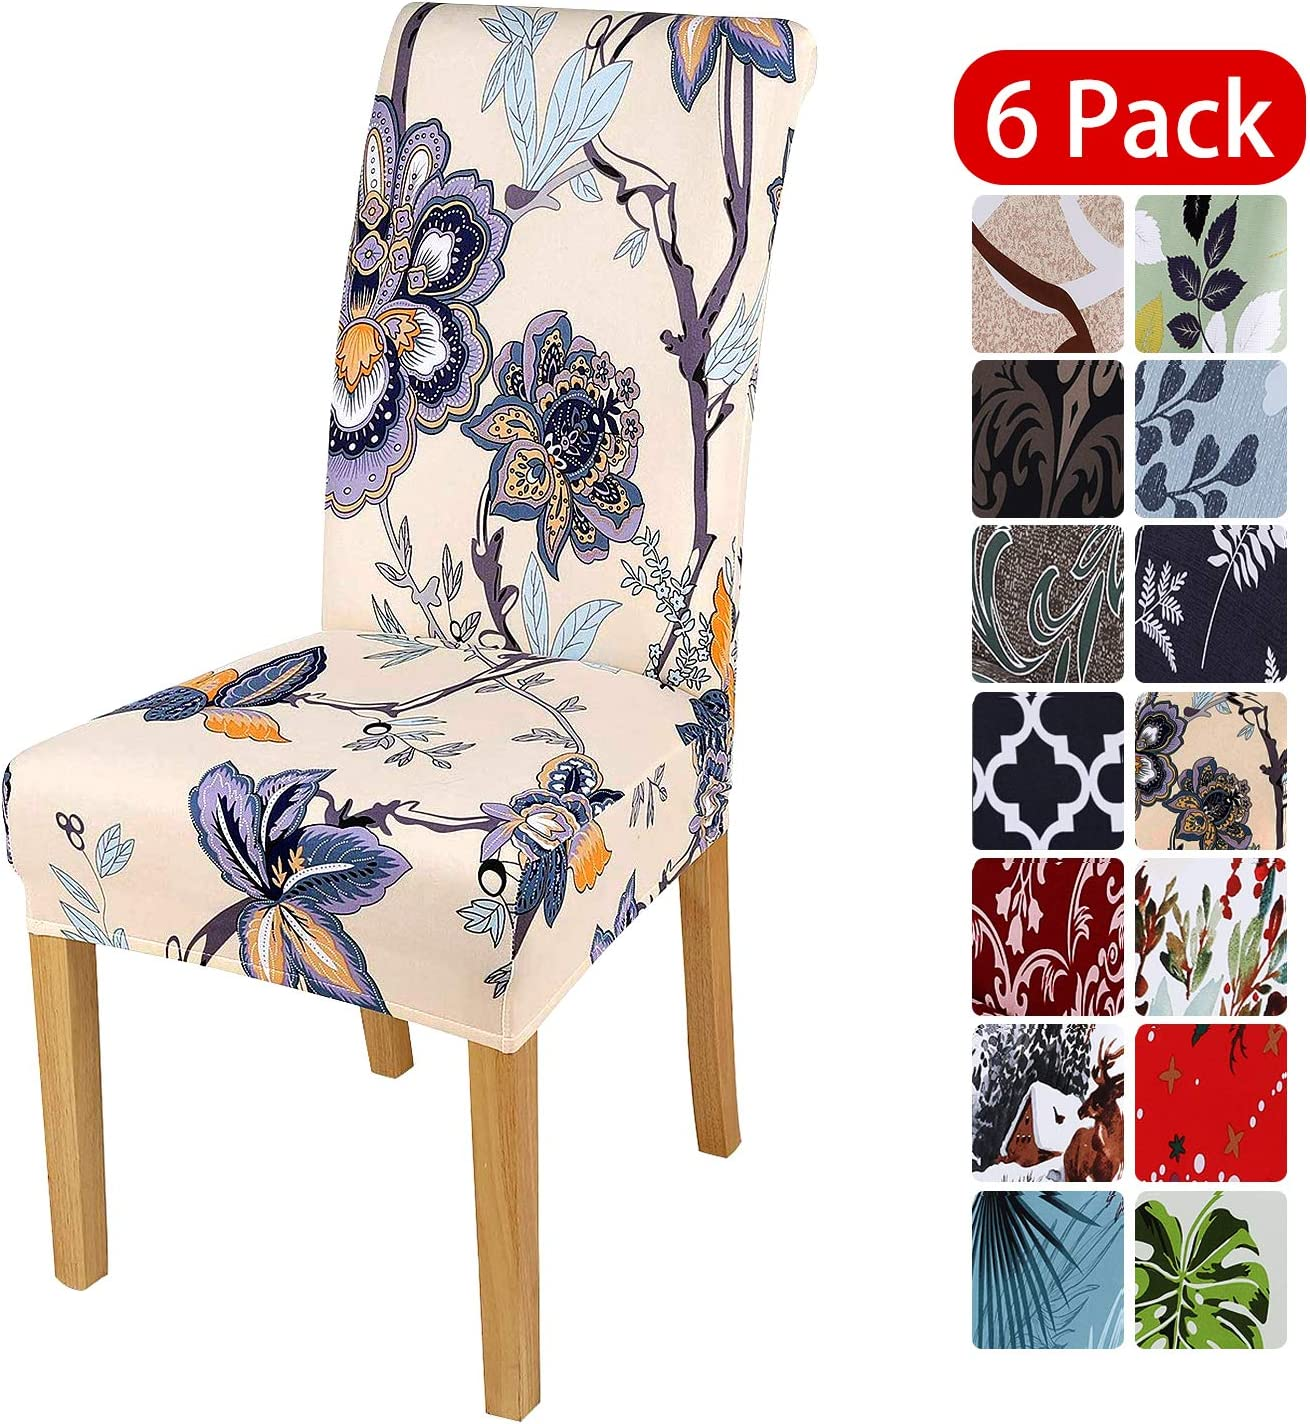 smiry Stretch Printed Dining Chair Covers, Spandex Removable Washable Dining Chair Protector Slipcovers for Home, Kitchen, Party, Restaurant - Set of 6, Beige